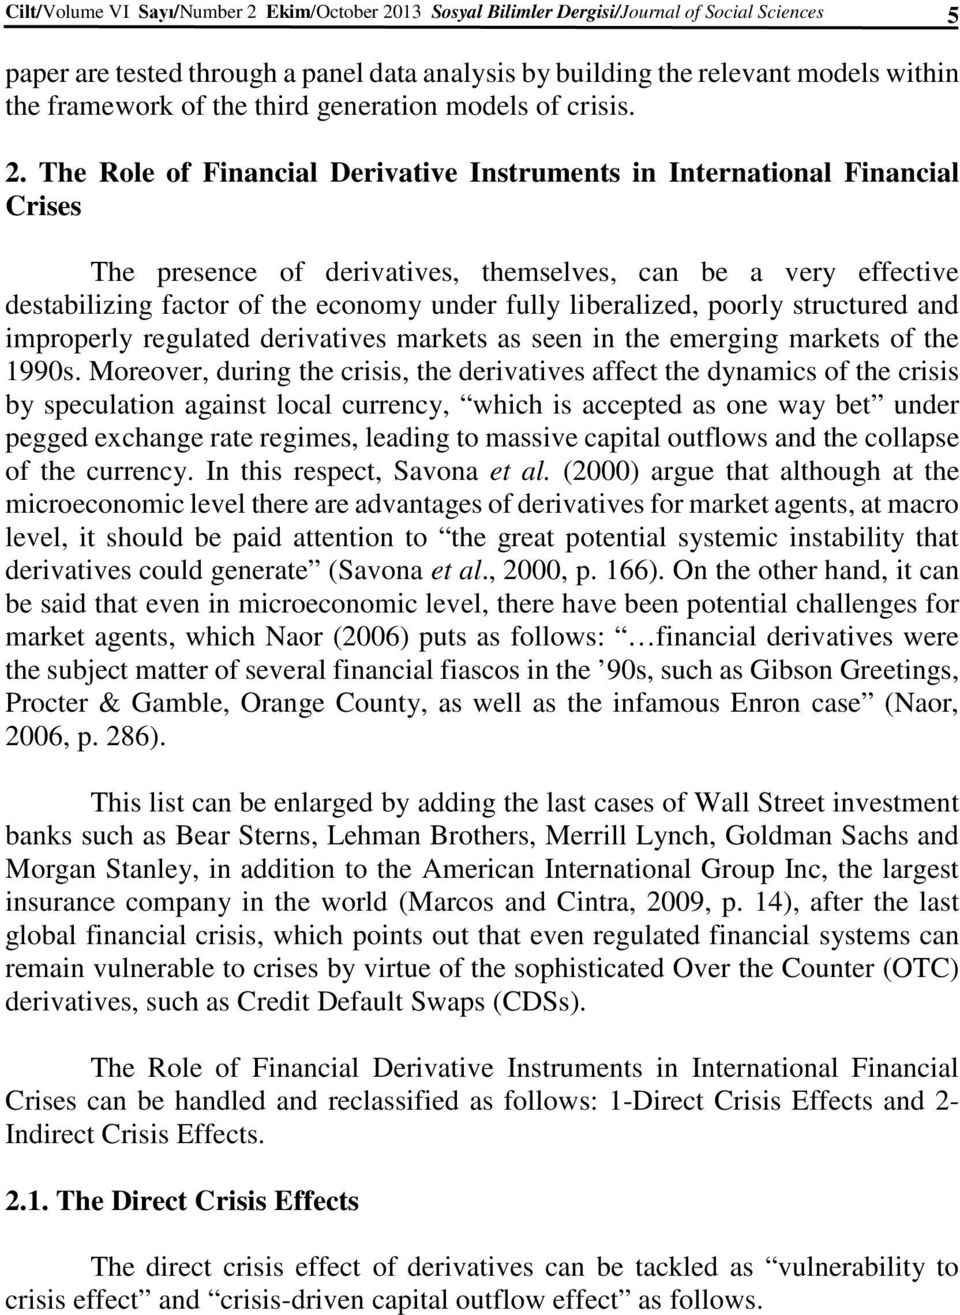 The Role of Financial Derivative Instruments in International Financial Crises The presence of derivatives, themselves, can be a very effective destabilizing factor of the economy under fully